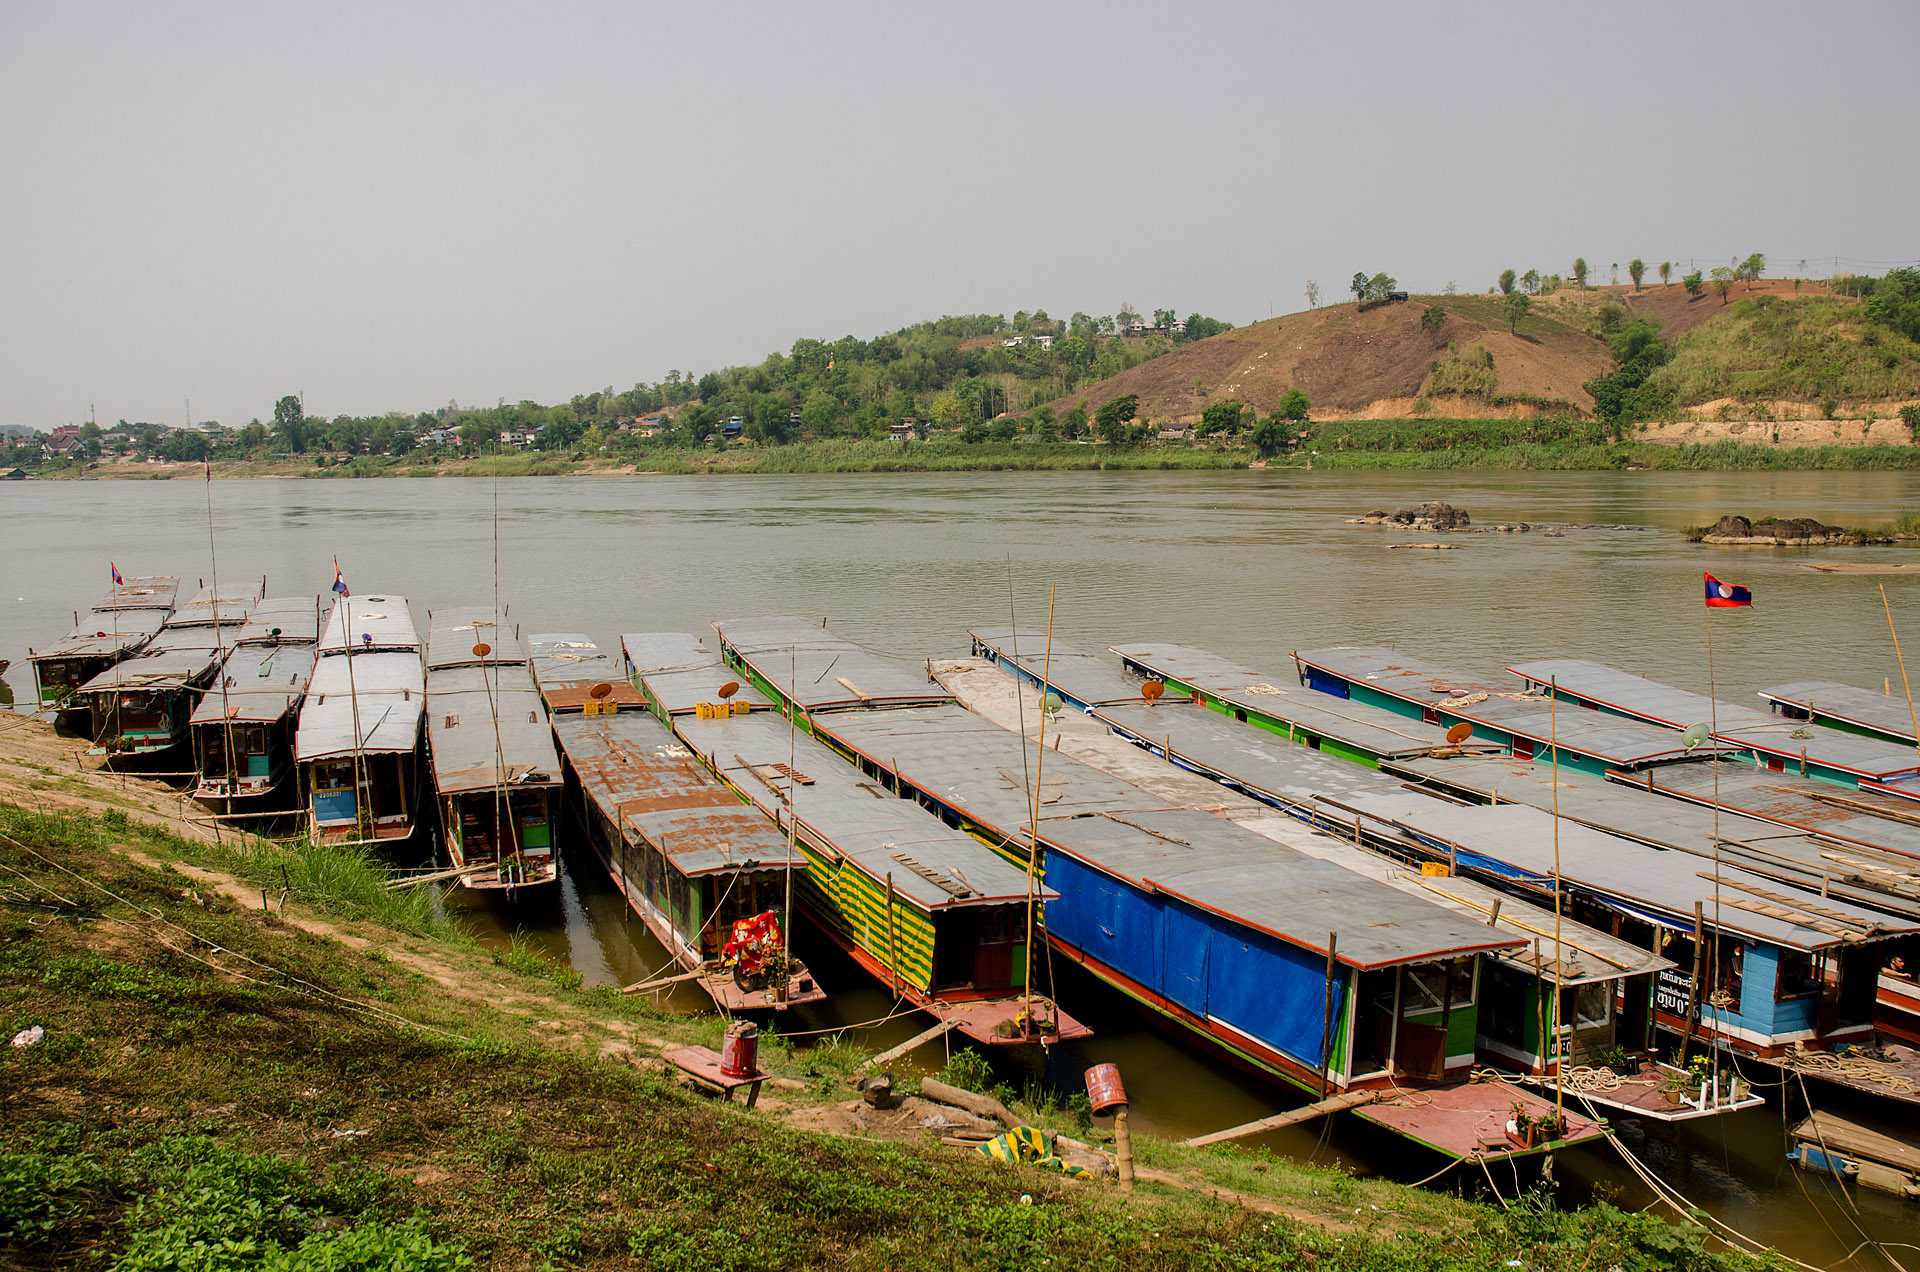 Slow boats at Houay Xai